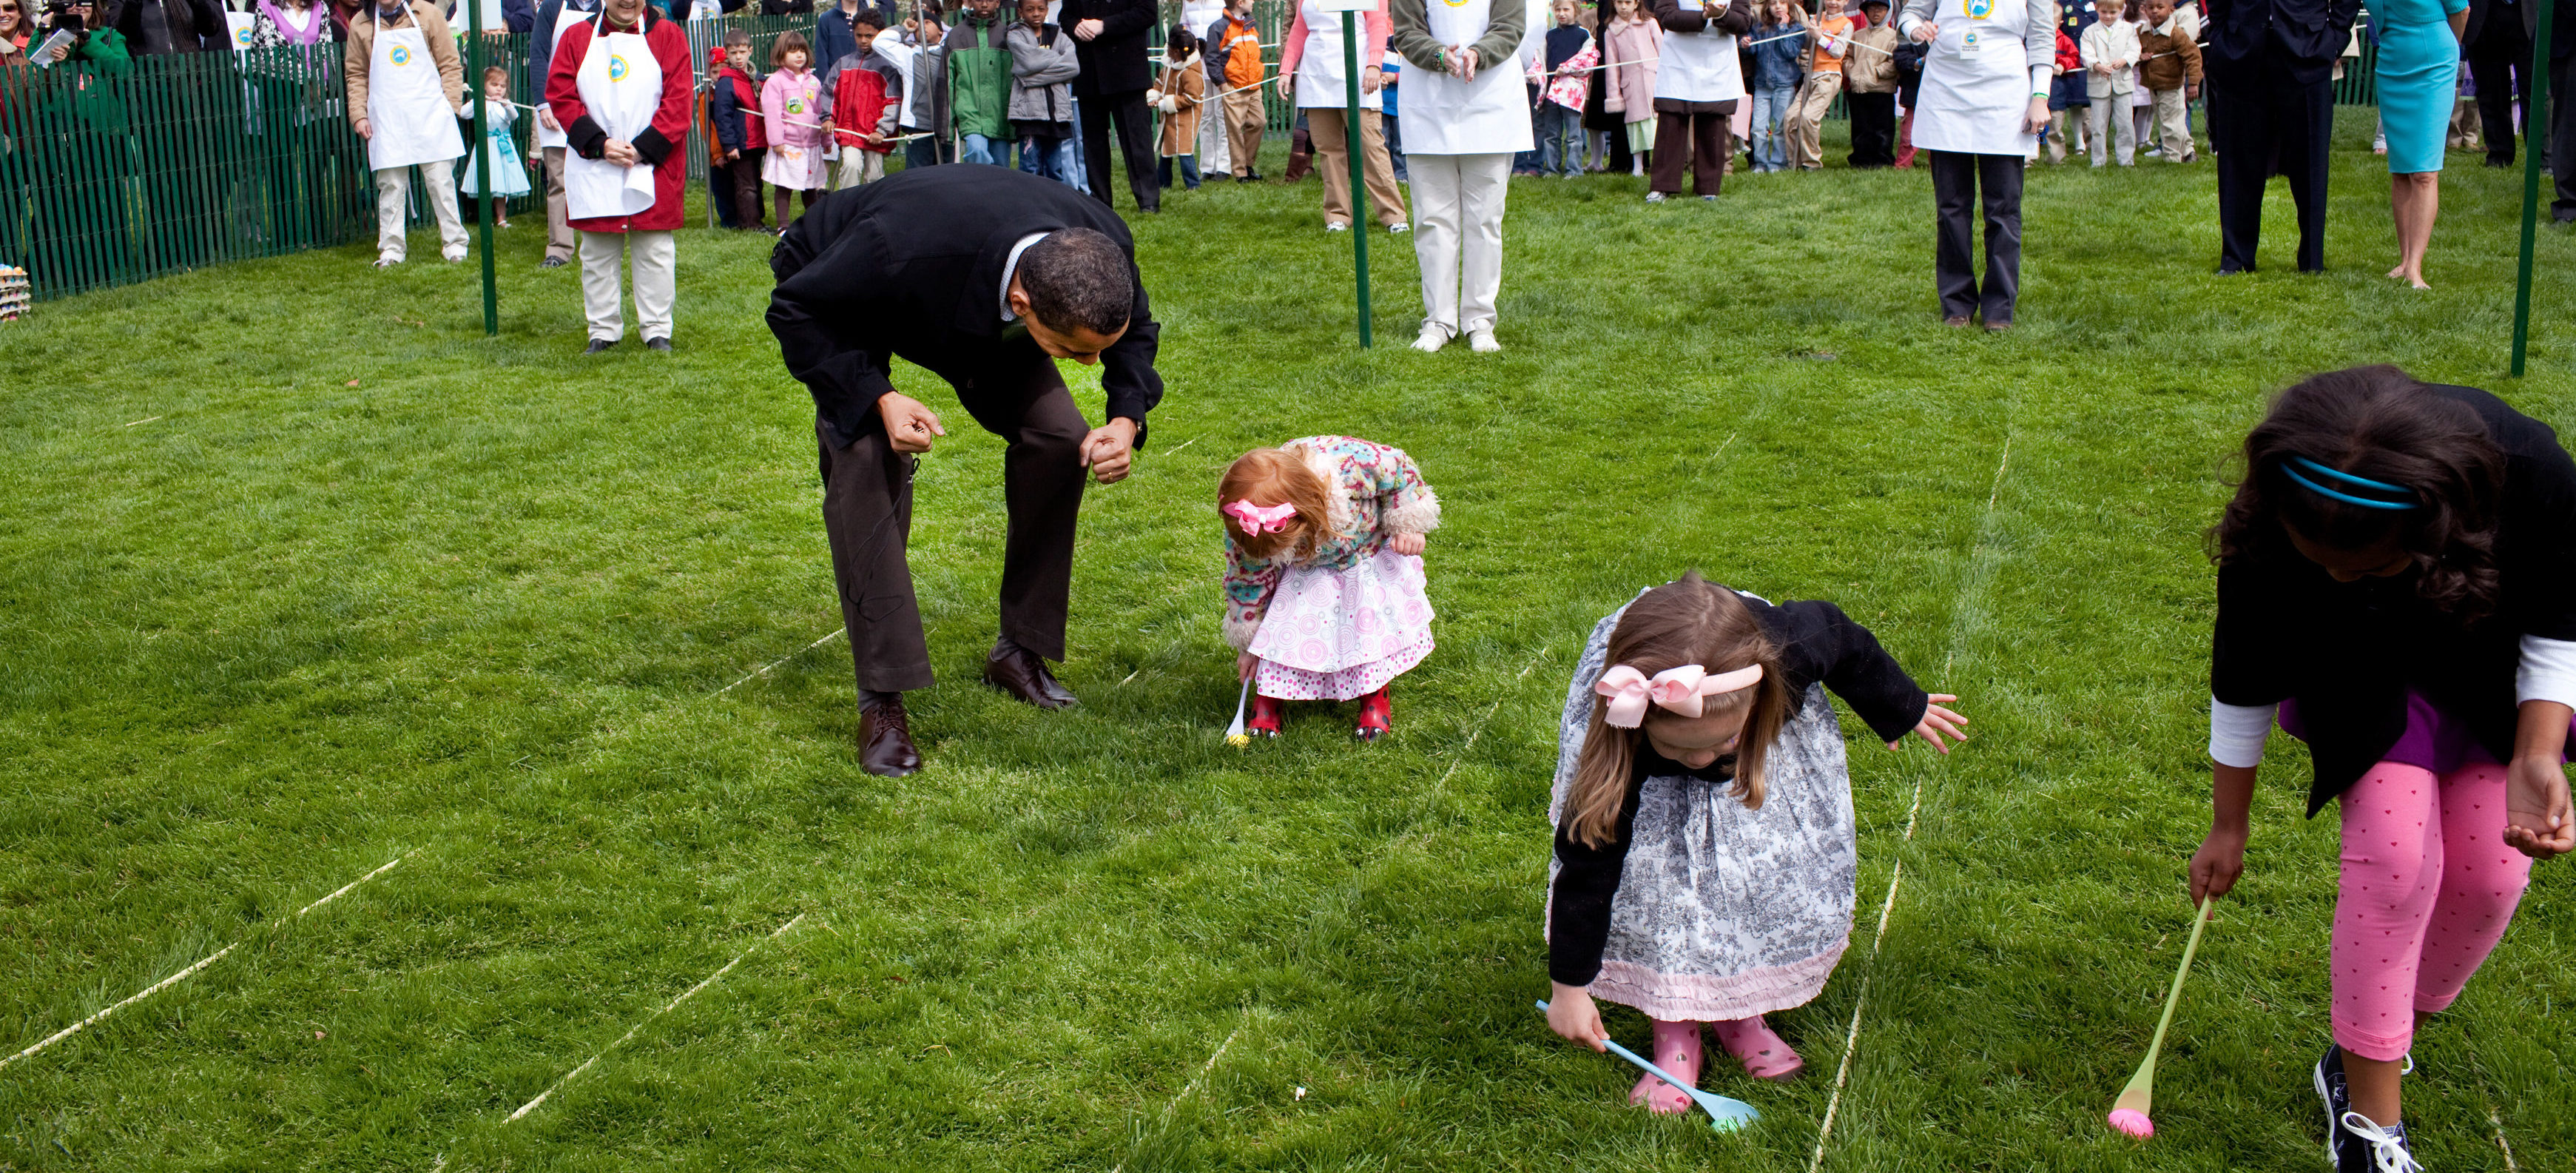 President Barack Obama cheers on a young child as she rolls her egg toward the finish line Monday, April 13, 2009, during the White House Easter Egg Roll. Official White House Photo by Pete Souza